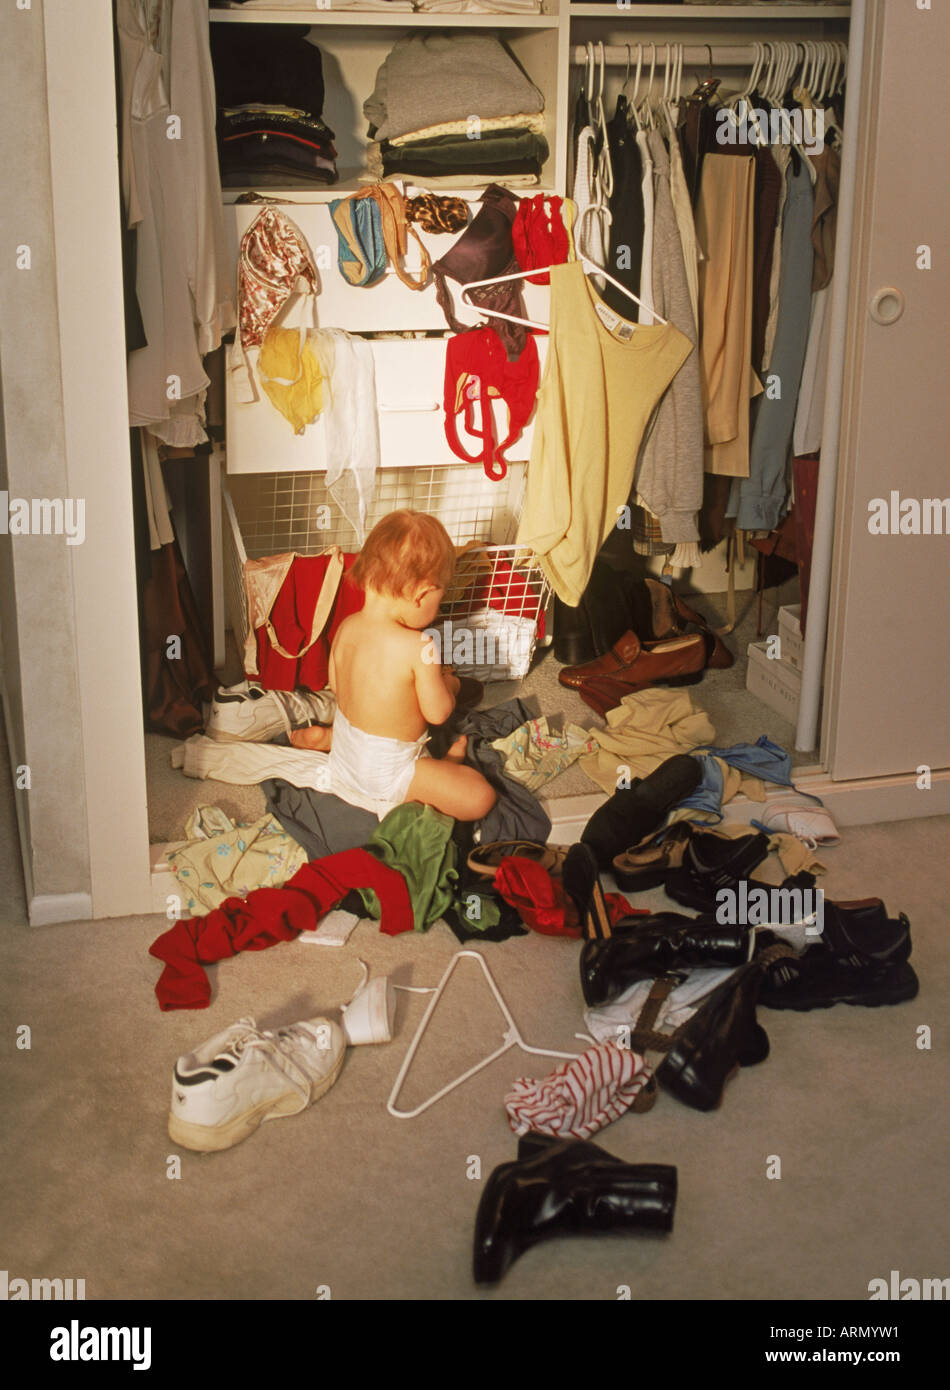 Baby Argues About Trying On Bedroom Shoes: Chaotic Closet Stock Photos & Chaotic Closet Stock Images